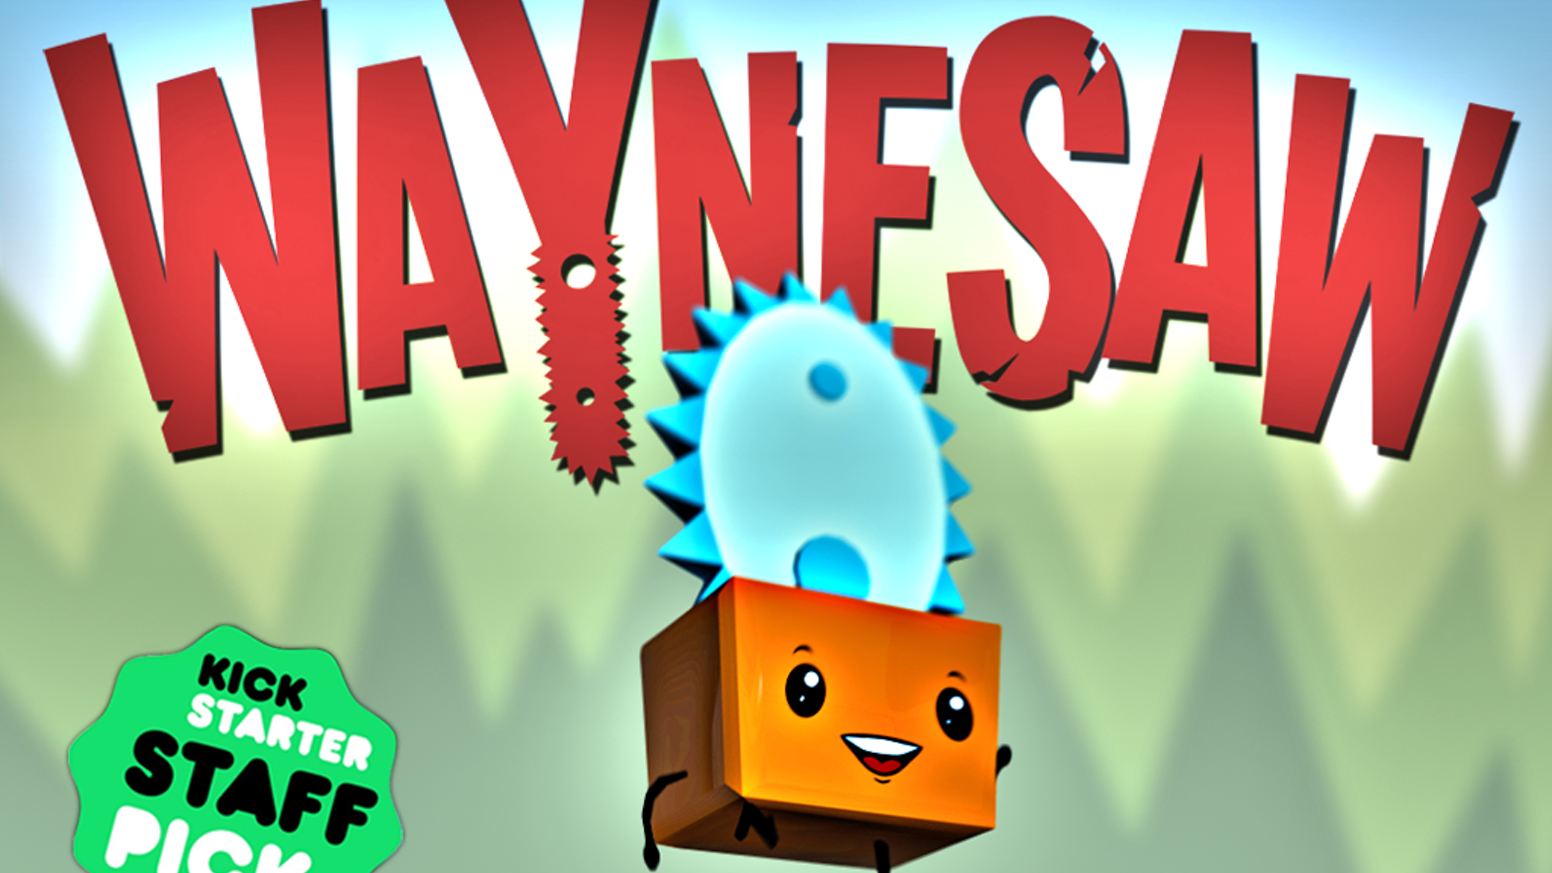 WAYNESAW: A game about a friendly chainsaw  by AmazingSuperPowers